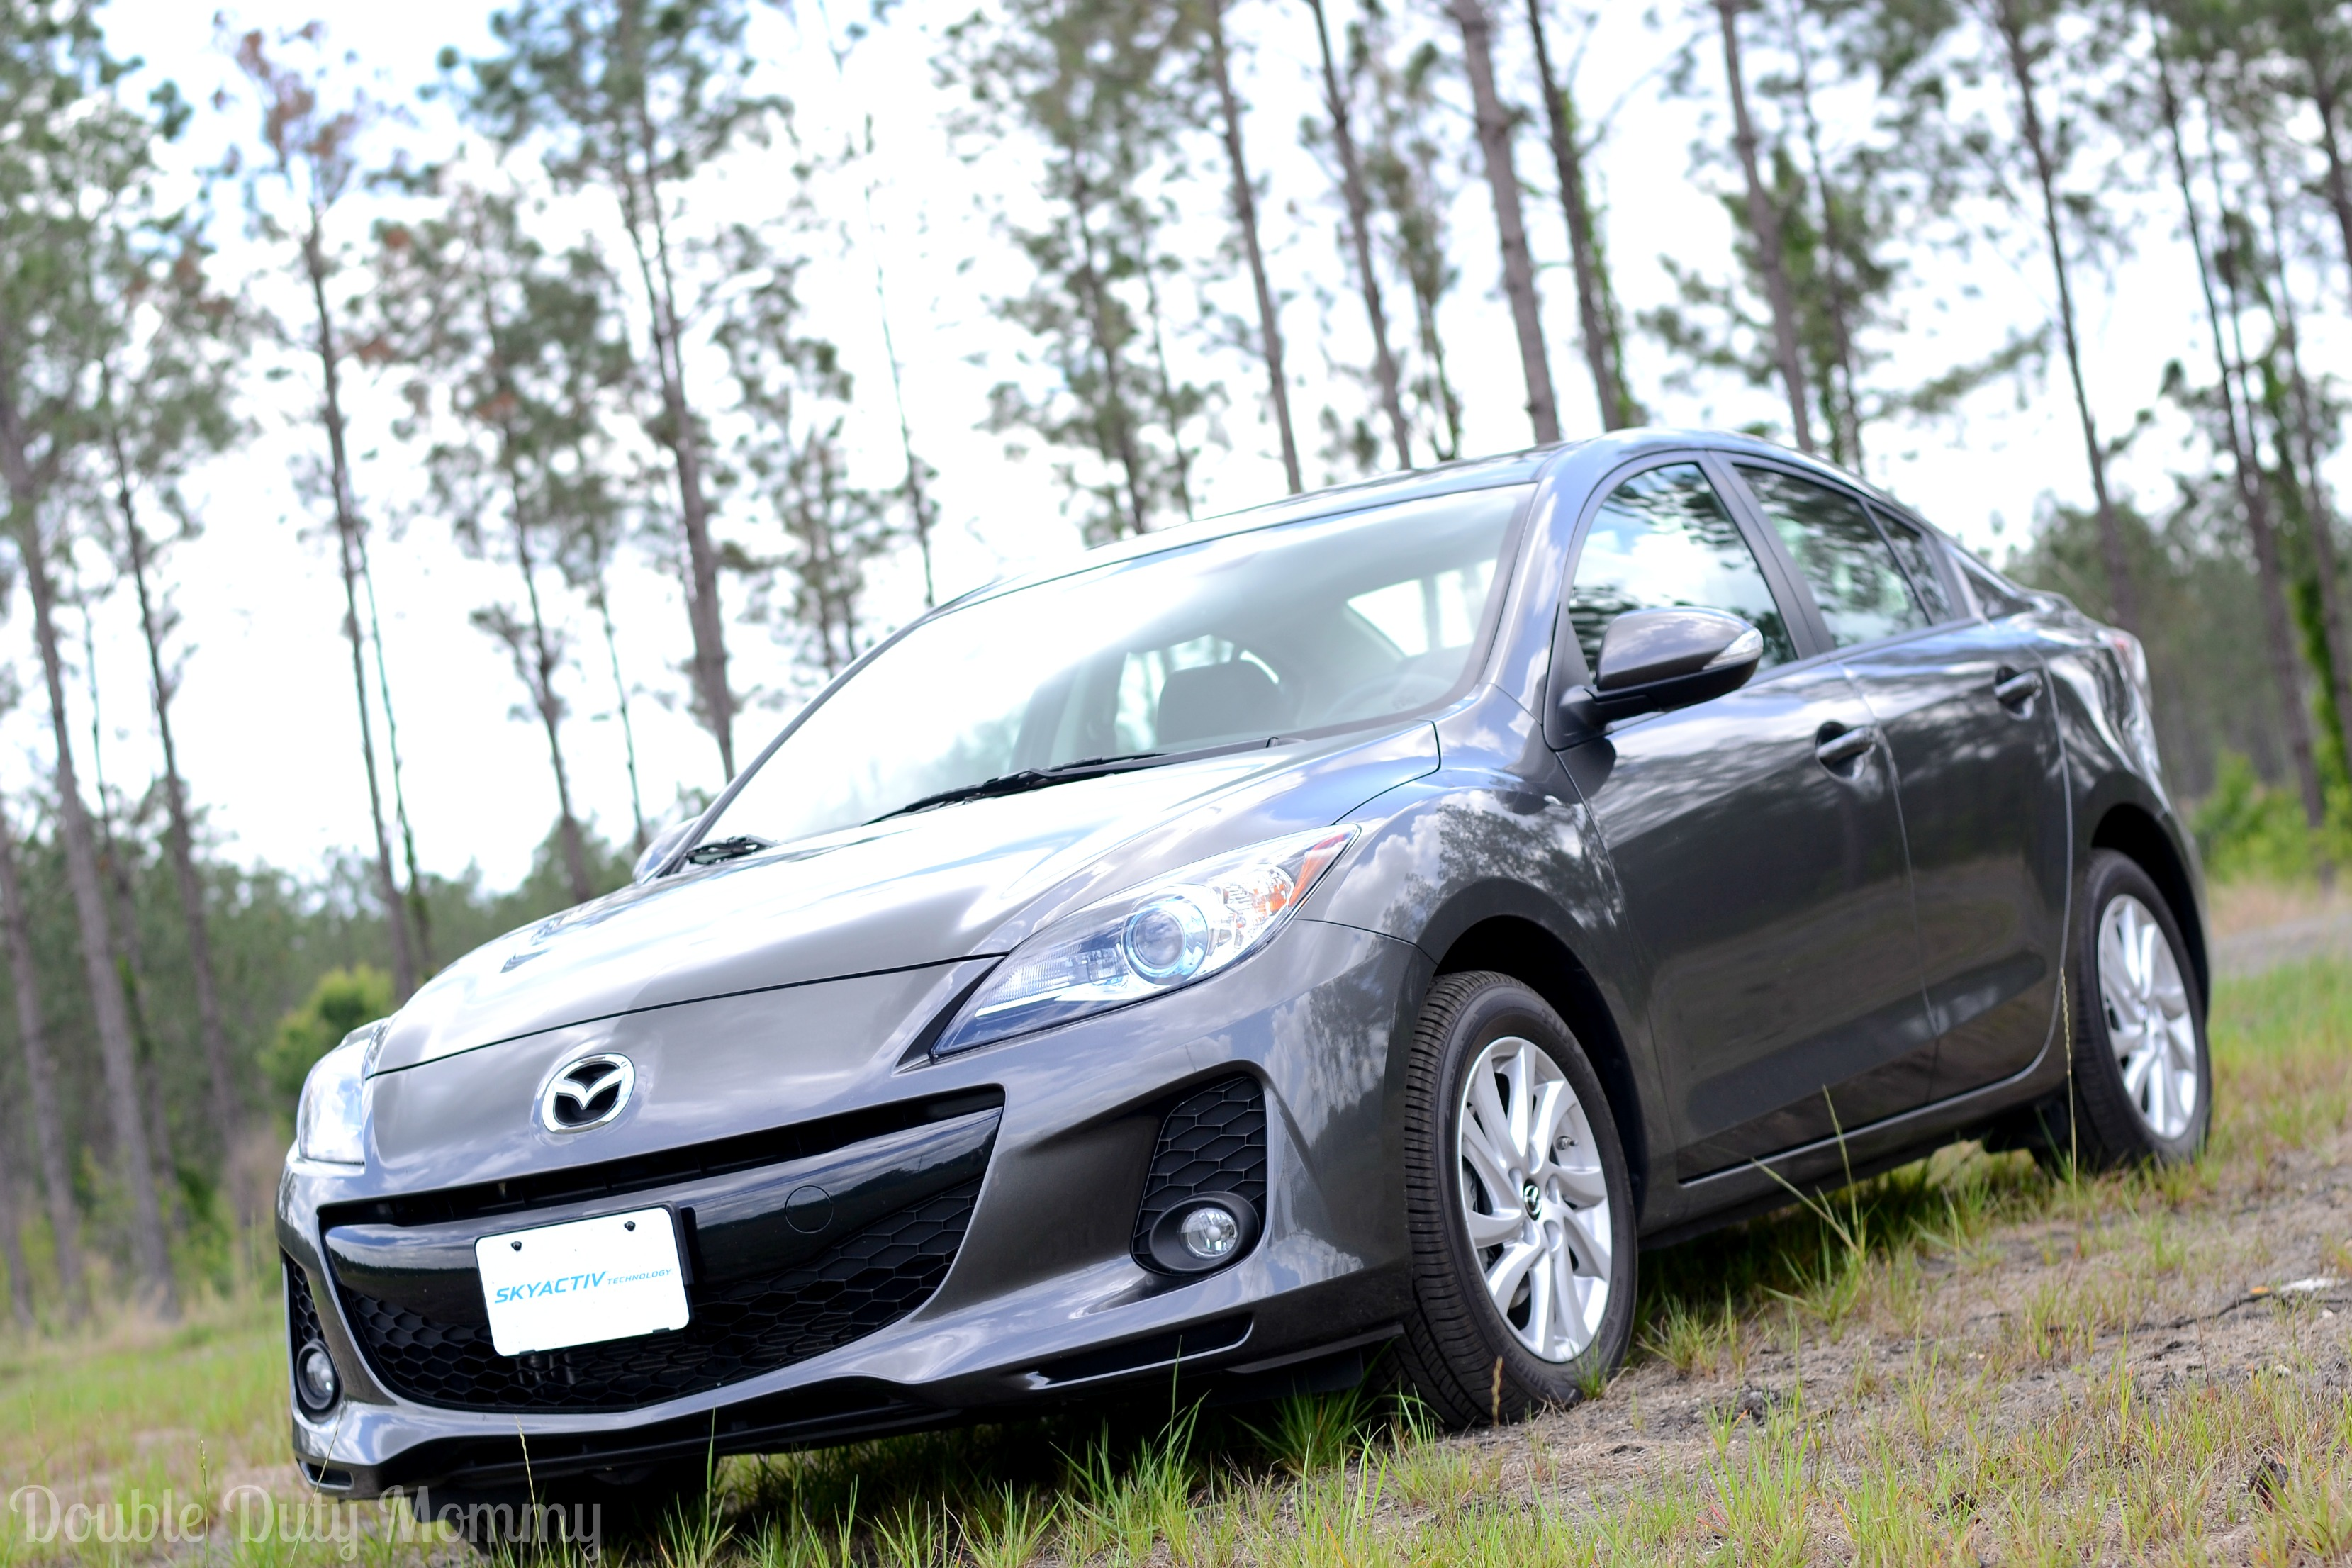 2013 mazda3 i grand touring with skyactiv 4 door sedan review double duty mommy. Black Bedroom Furniture Sets. Home Design Ideas